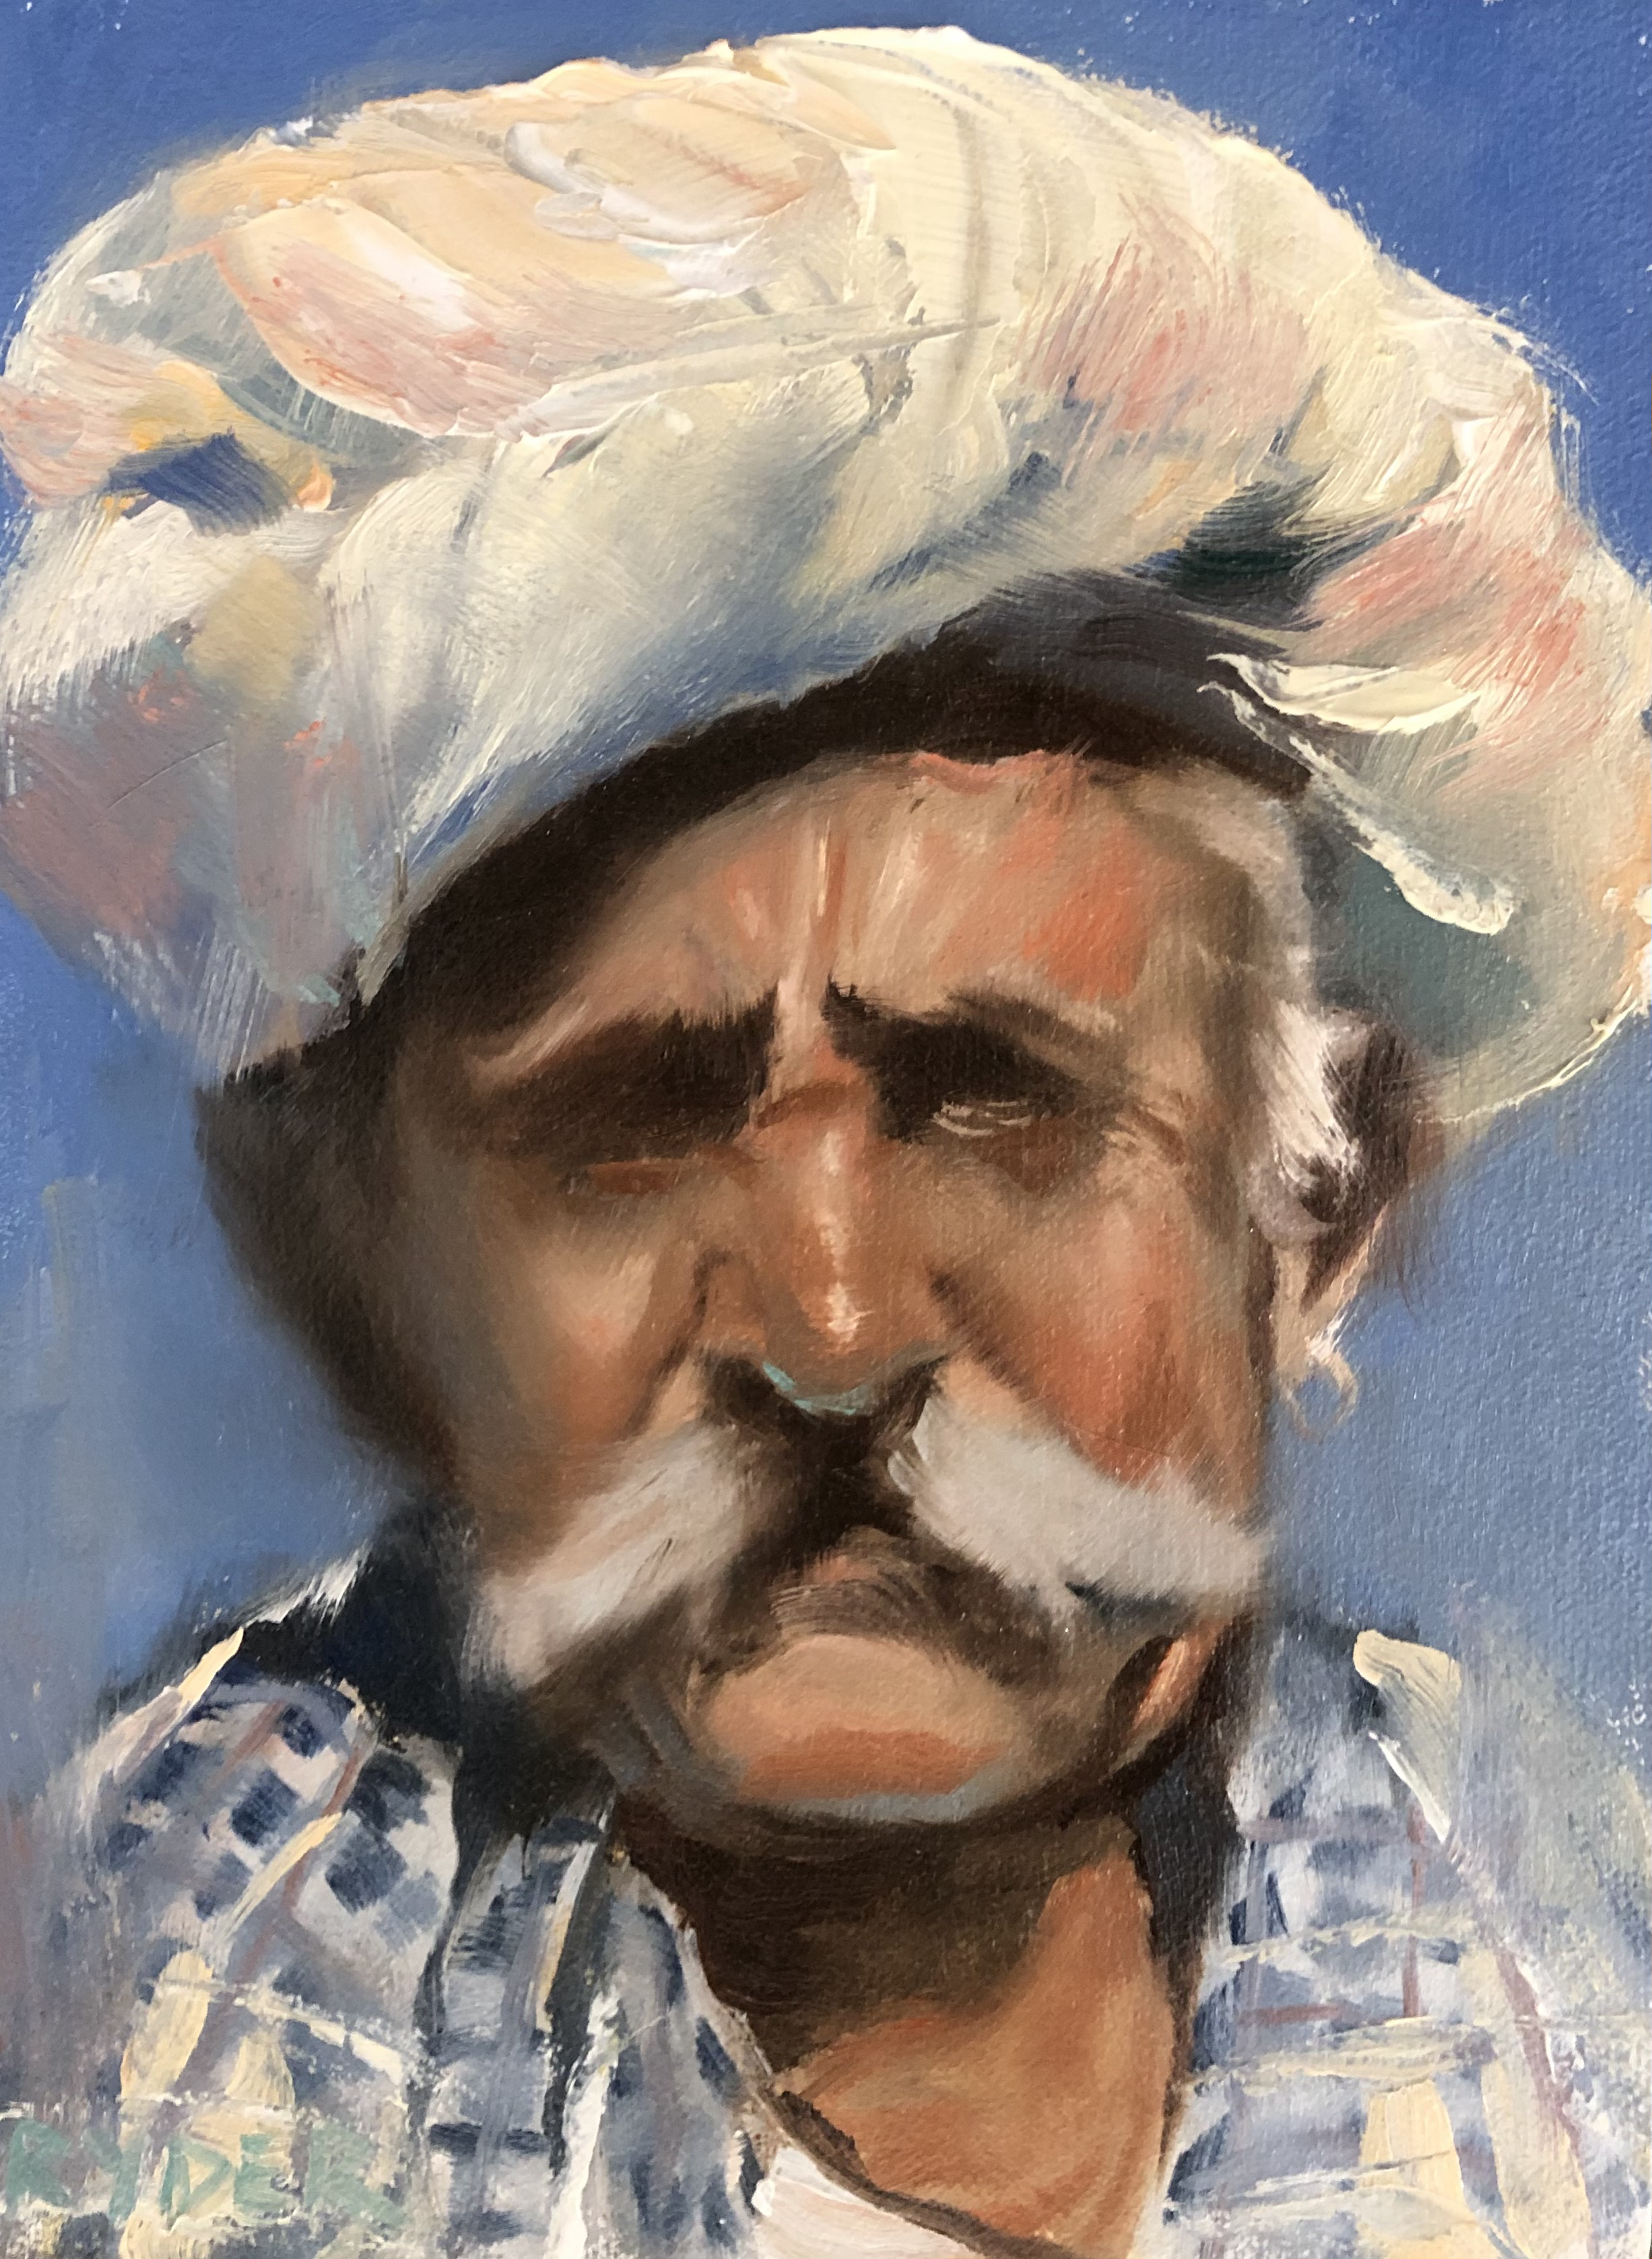 Fisherman head study